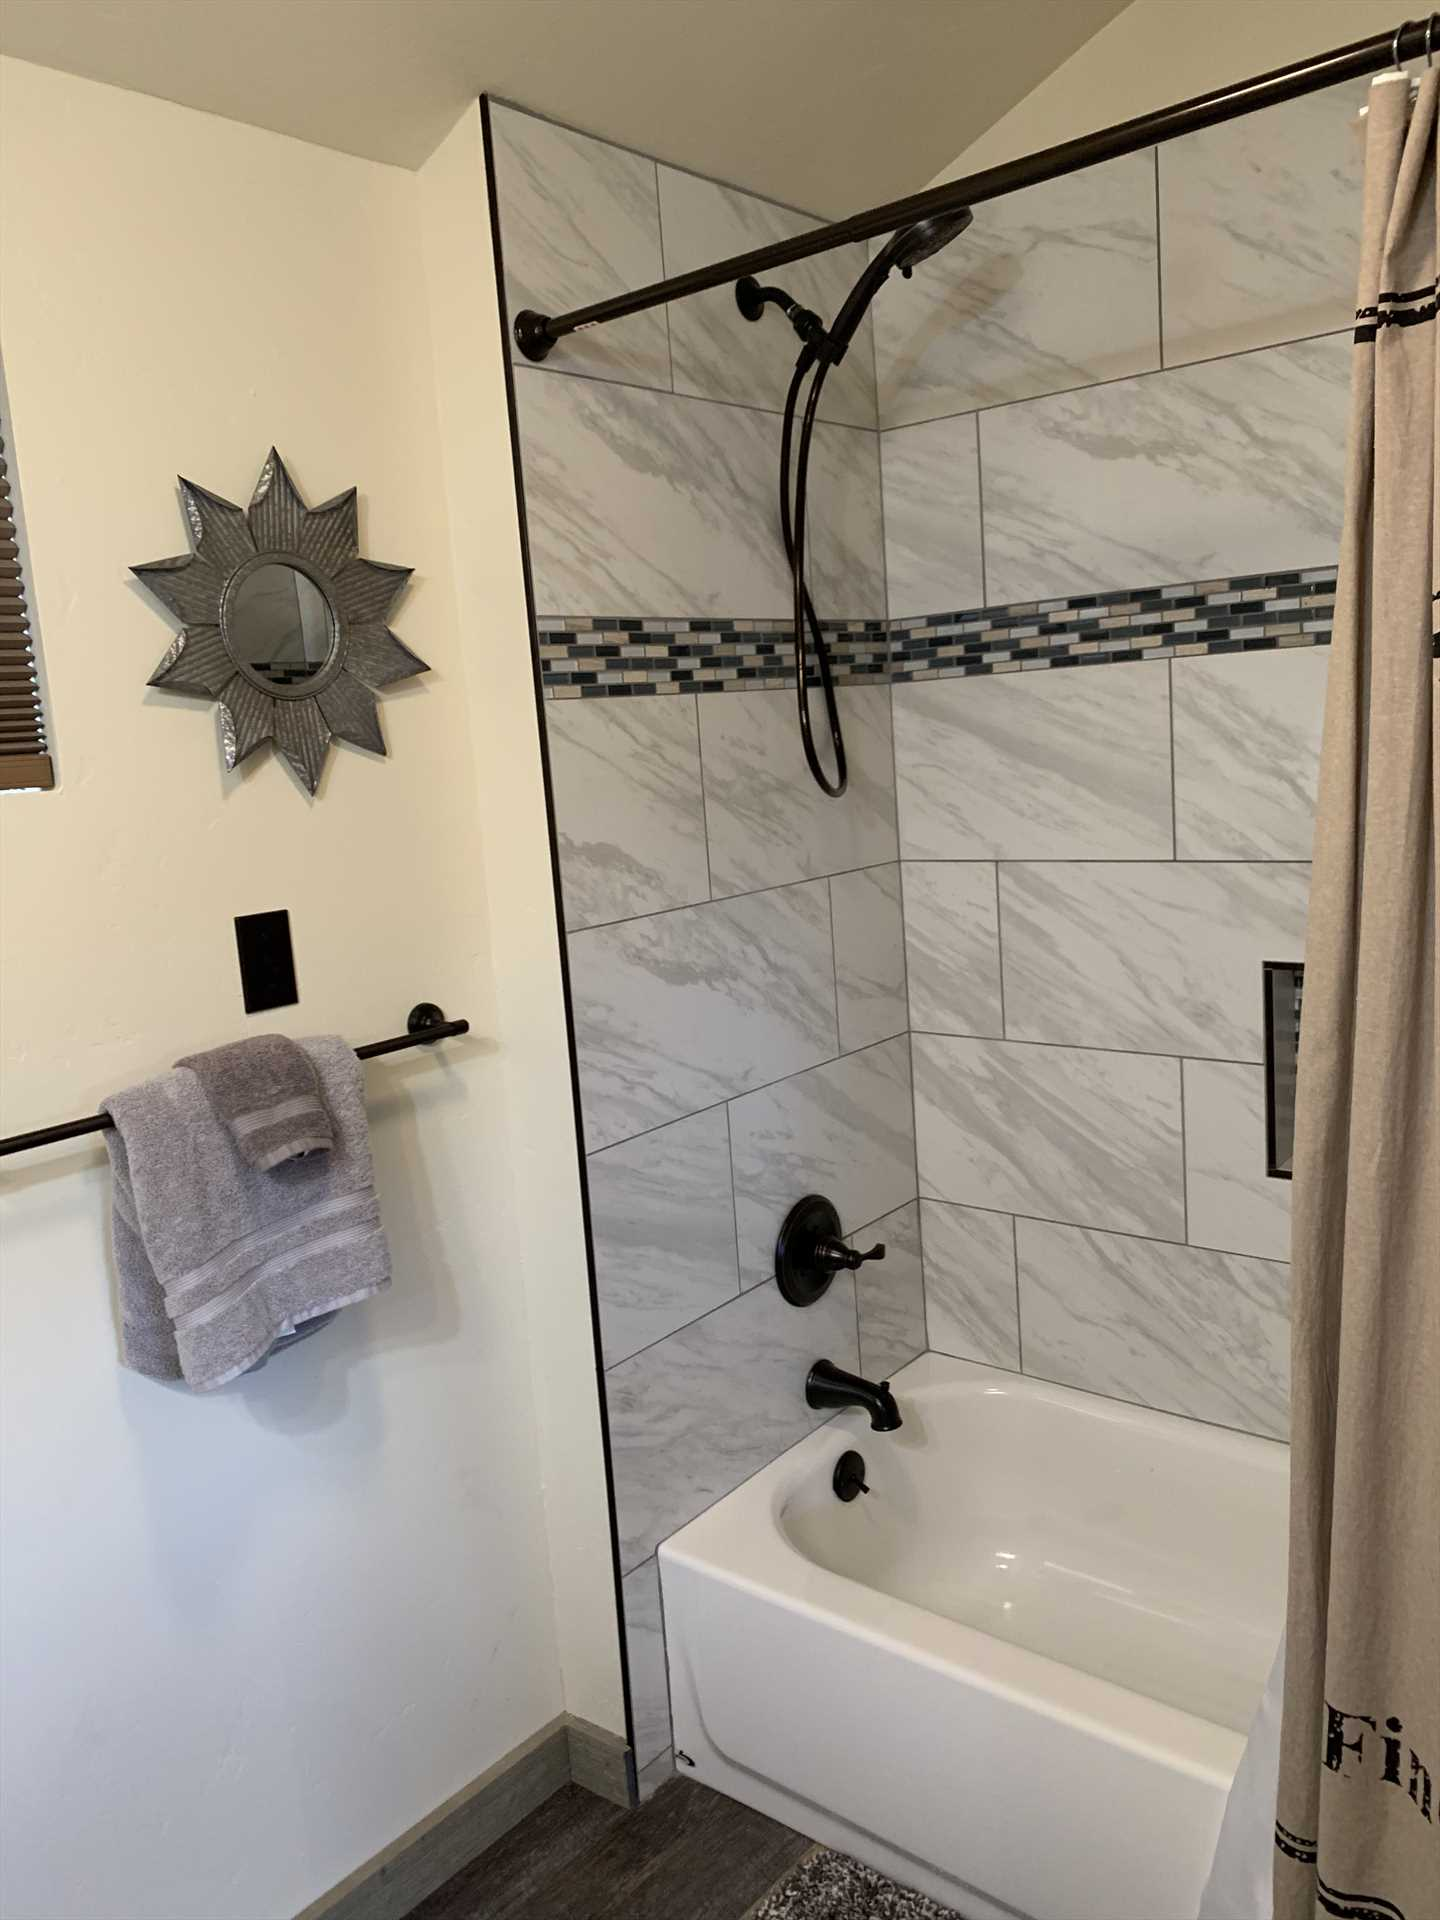 Clean up in style and comfort in the shower and tub combo in the cabin's full bath!